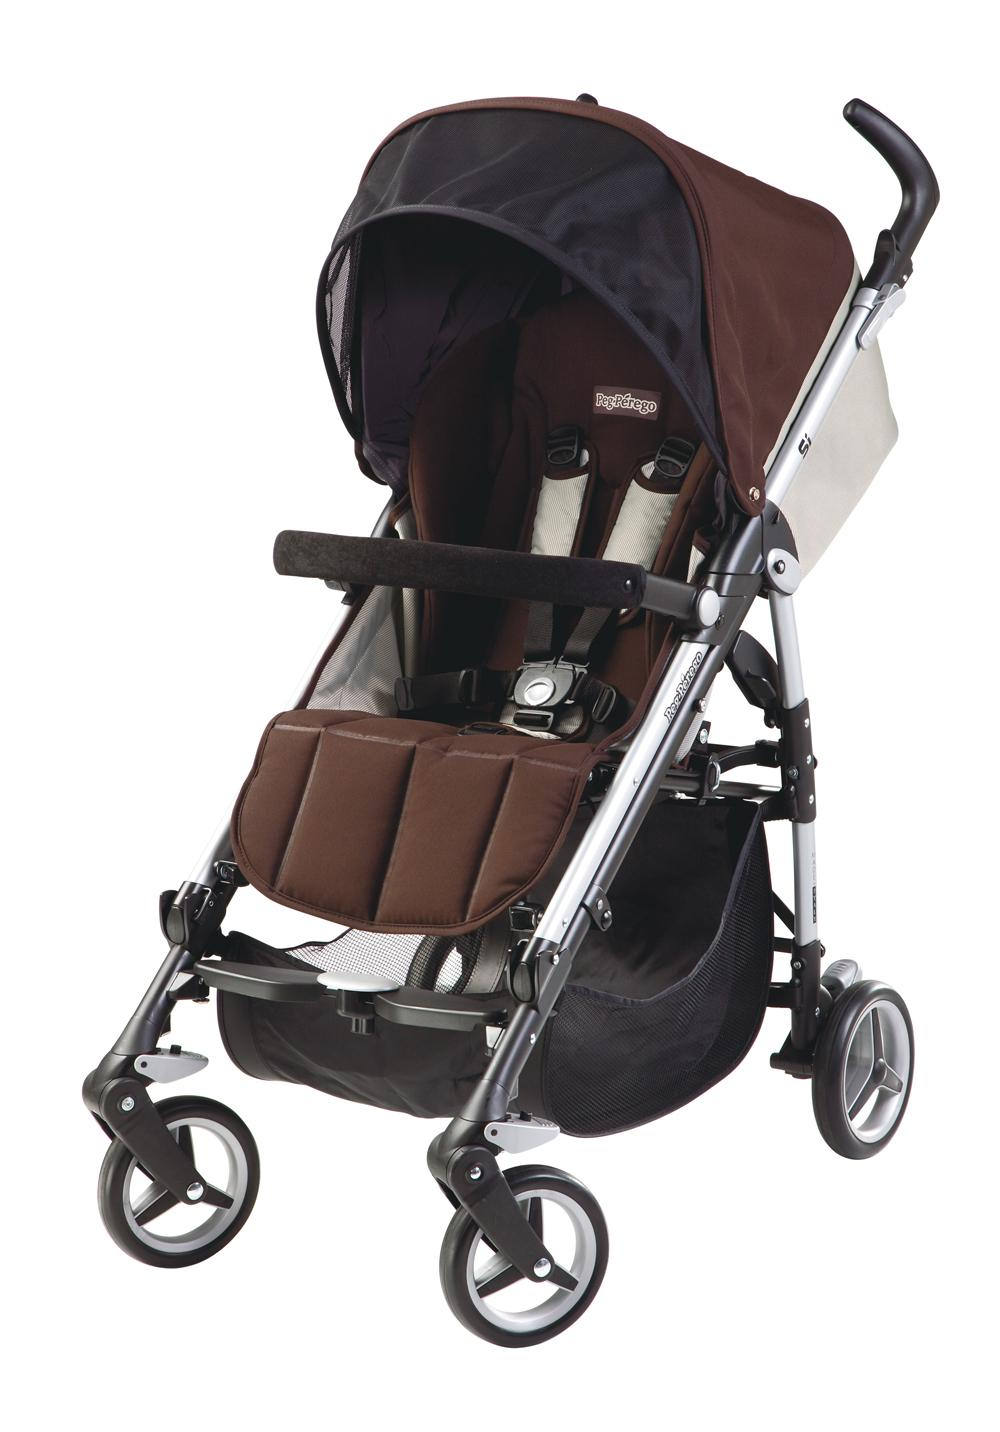 Peg Perego Strollers Free Shipping Amp No Tax Always